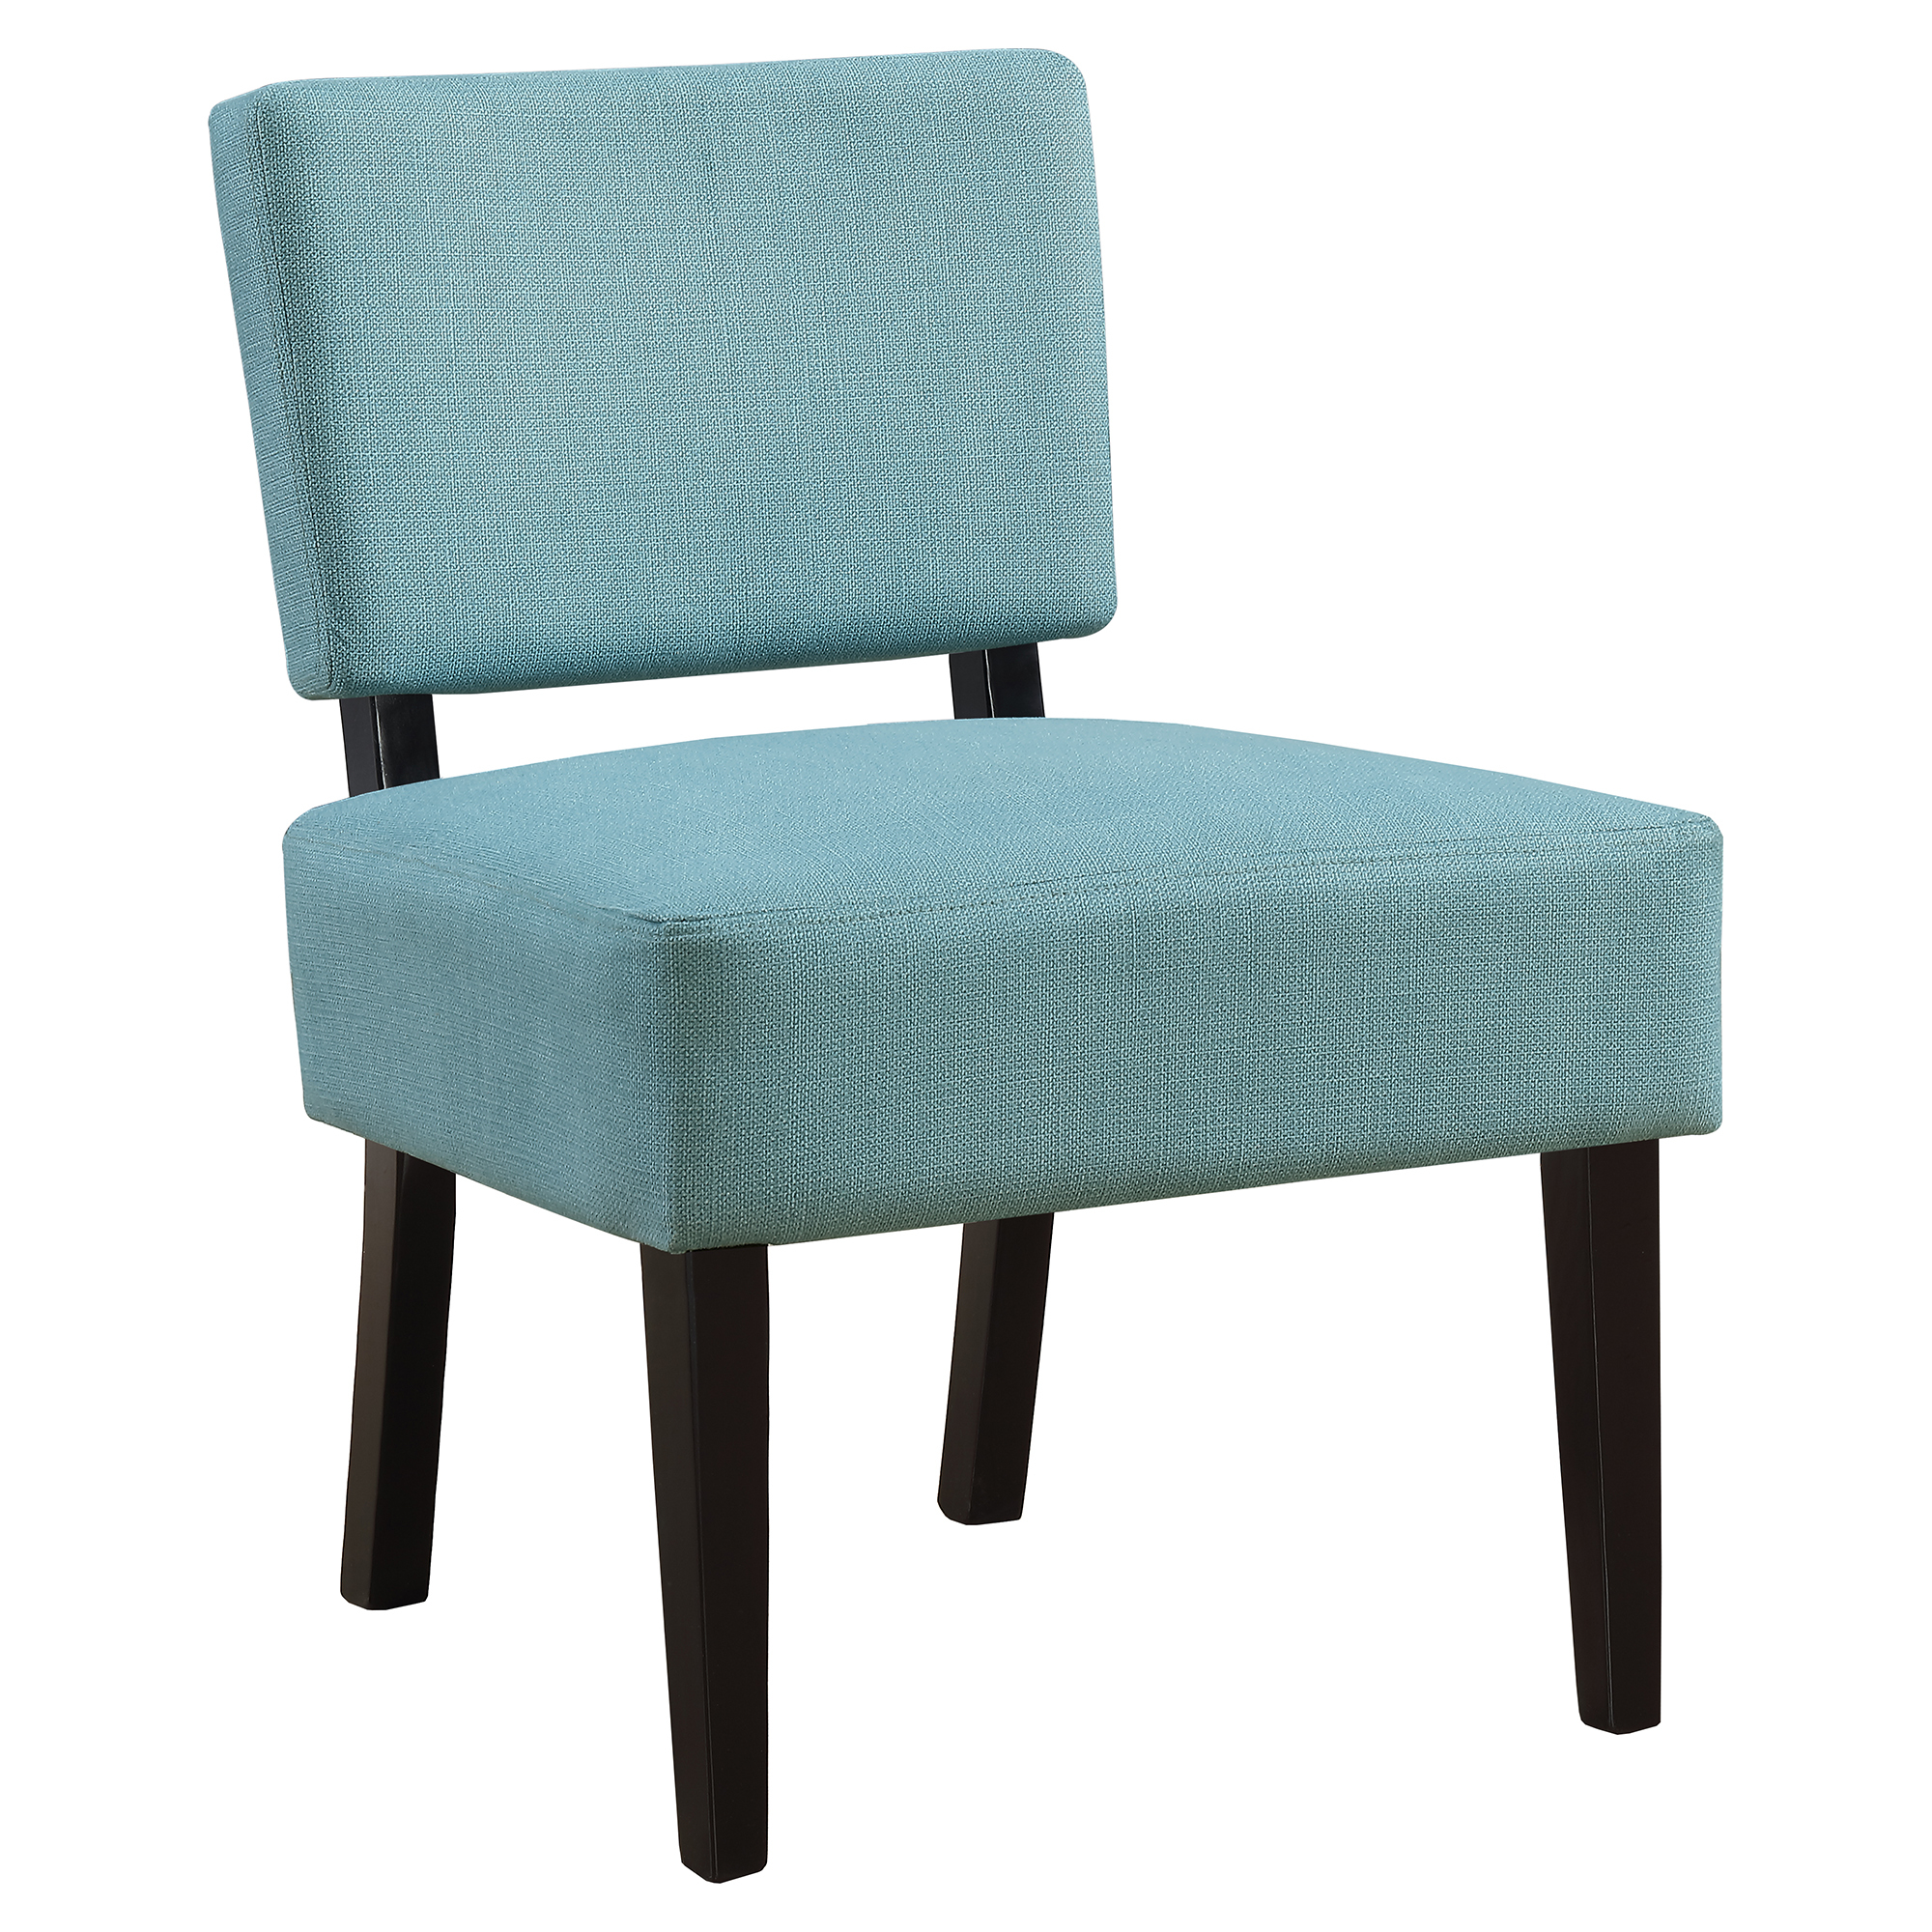 ACCENT CHAIR - TEAL FABRIC